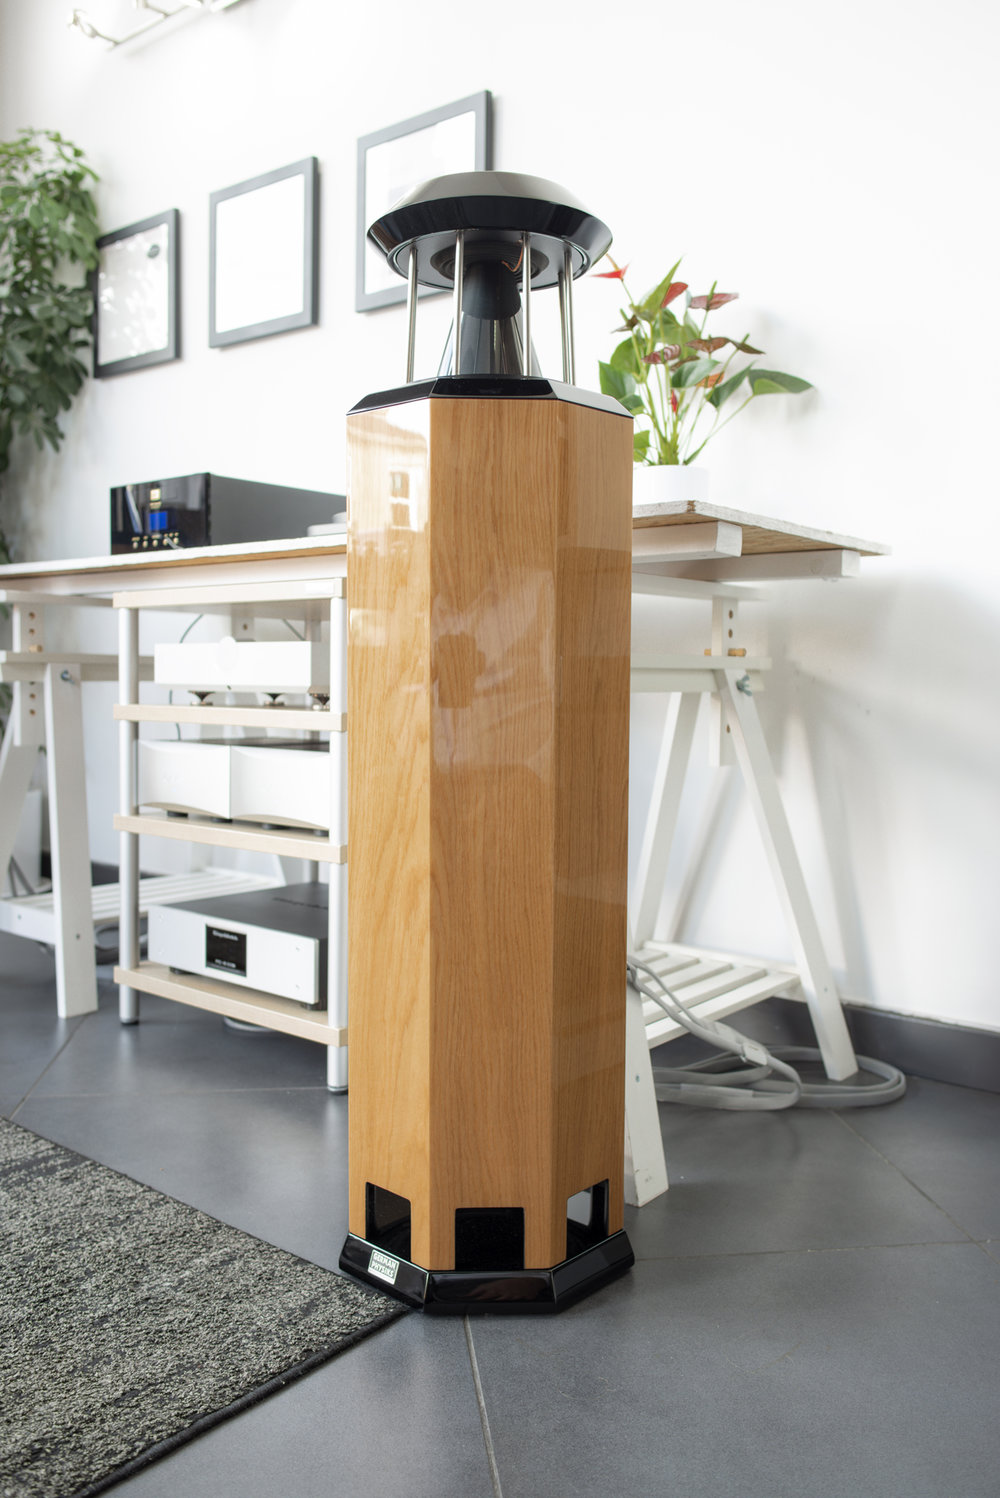 HRS-130 loudspeaker in high polish oak | Audio-philia, Edinburgh, Scotland